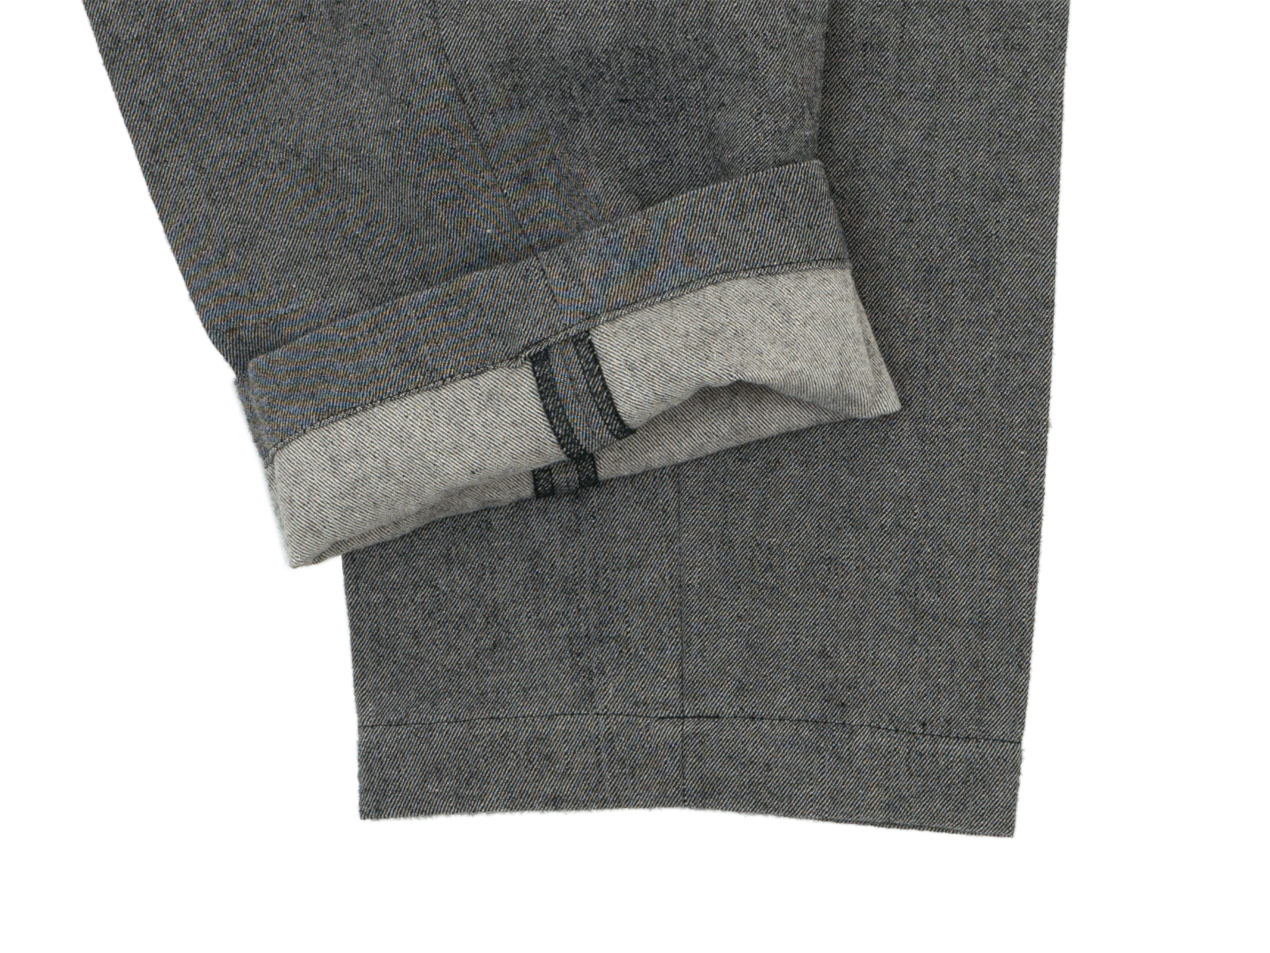 ENDS and MEANS W/L Relax Fit Trousers